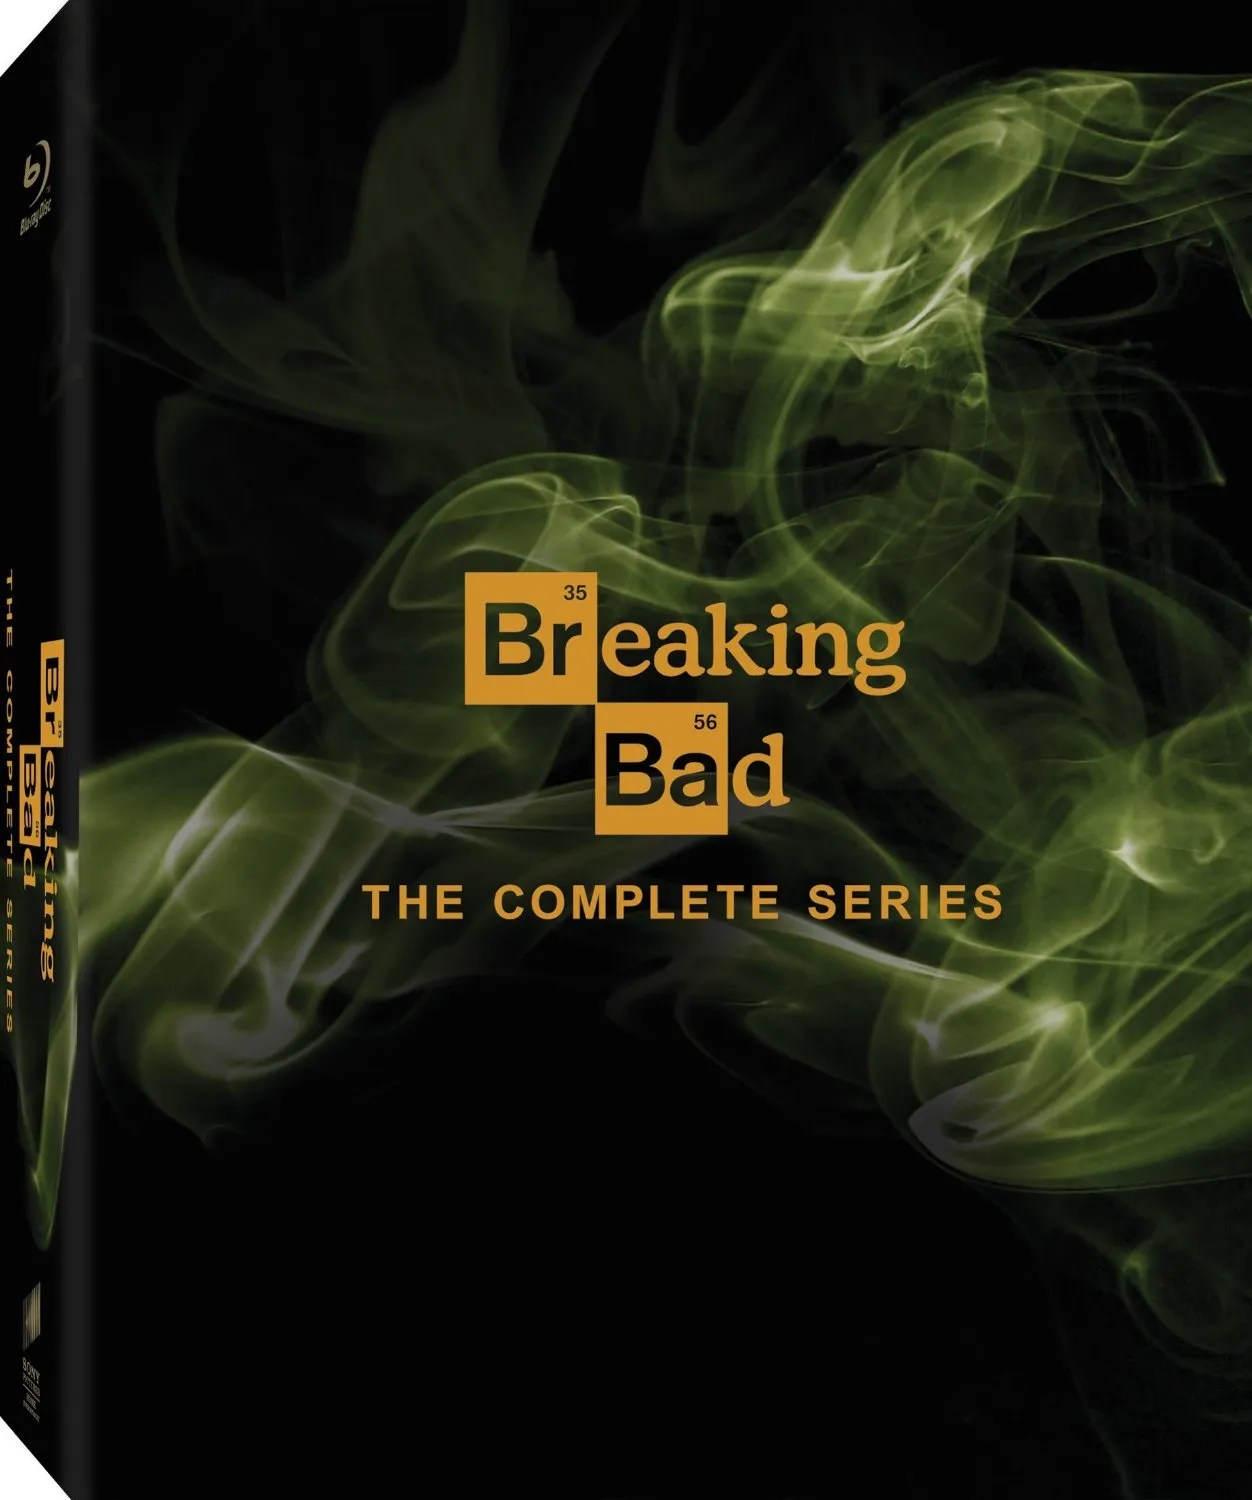 Bad Serie Breaking Bad Blu Ray Giveaway Win The Complete Series